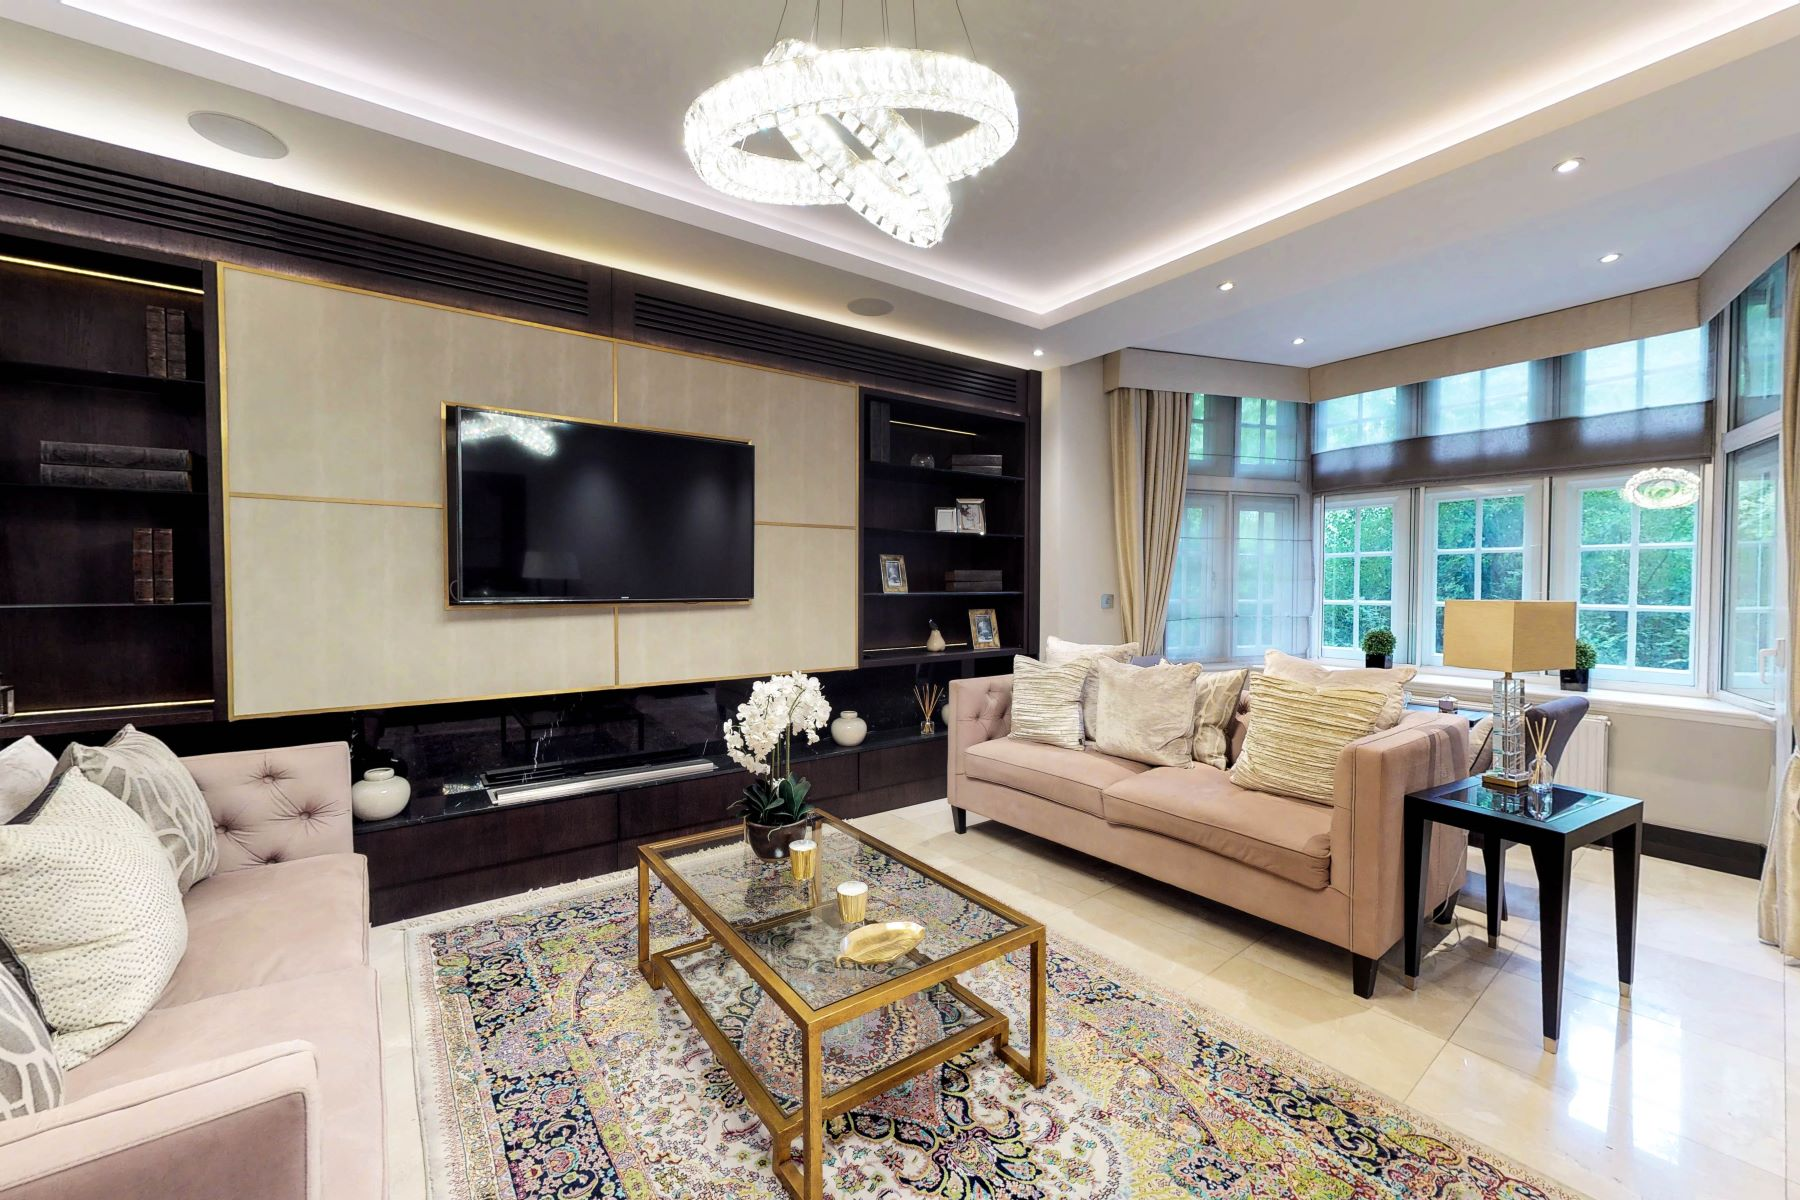 Apartments for Sale at 29 Parkside London, England SW1X 7JP United Kingdom